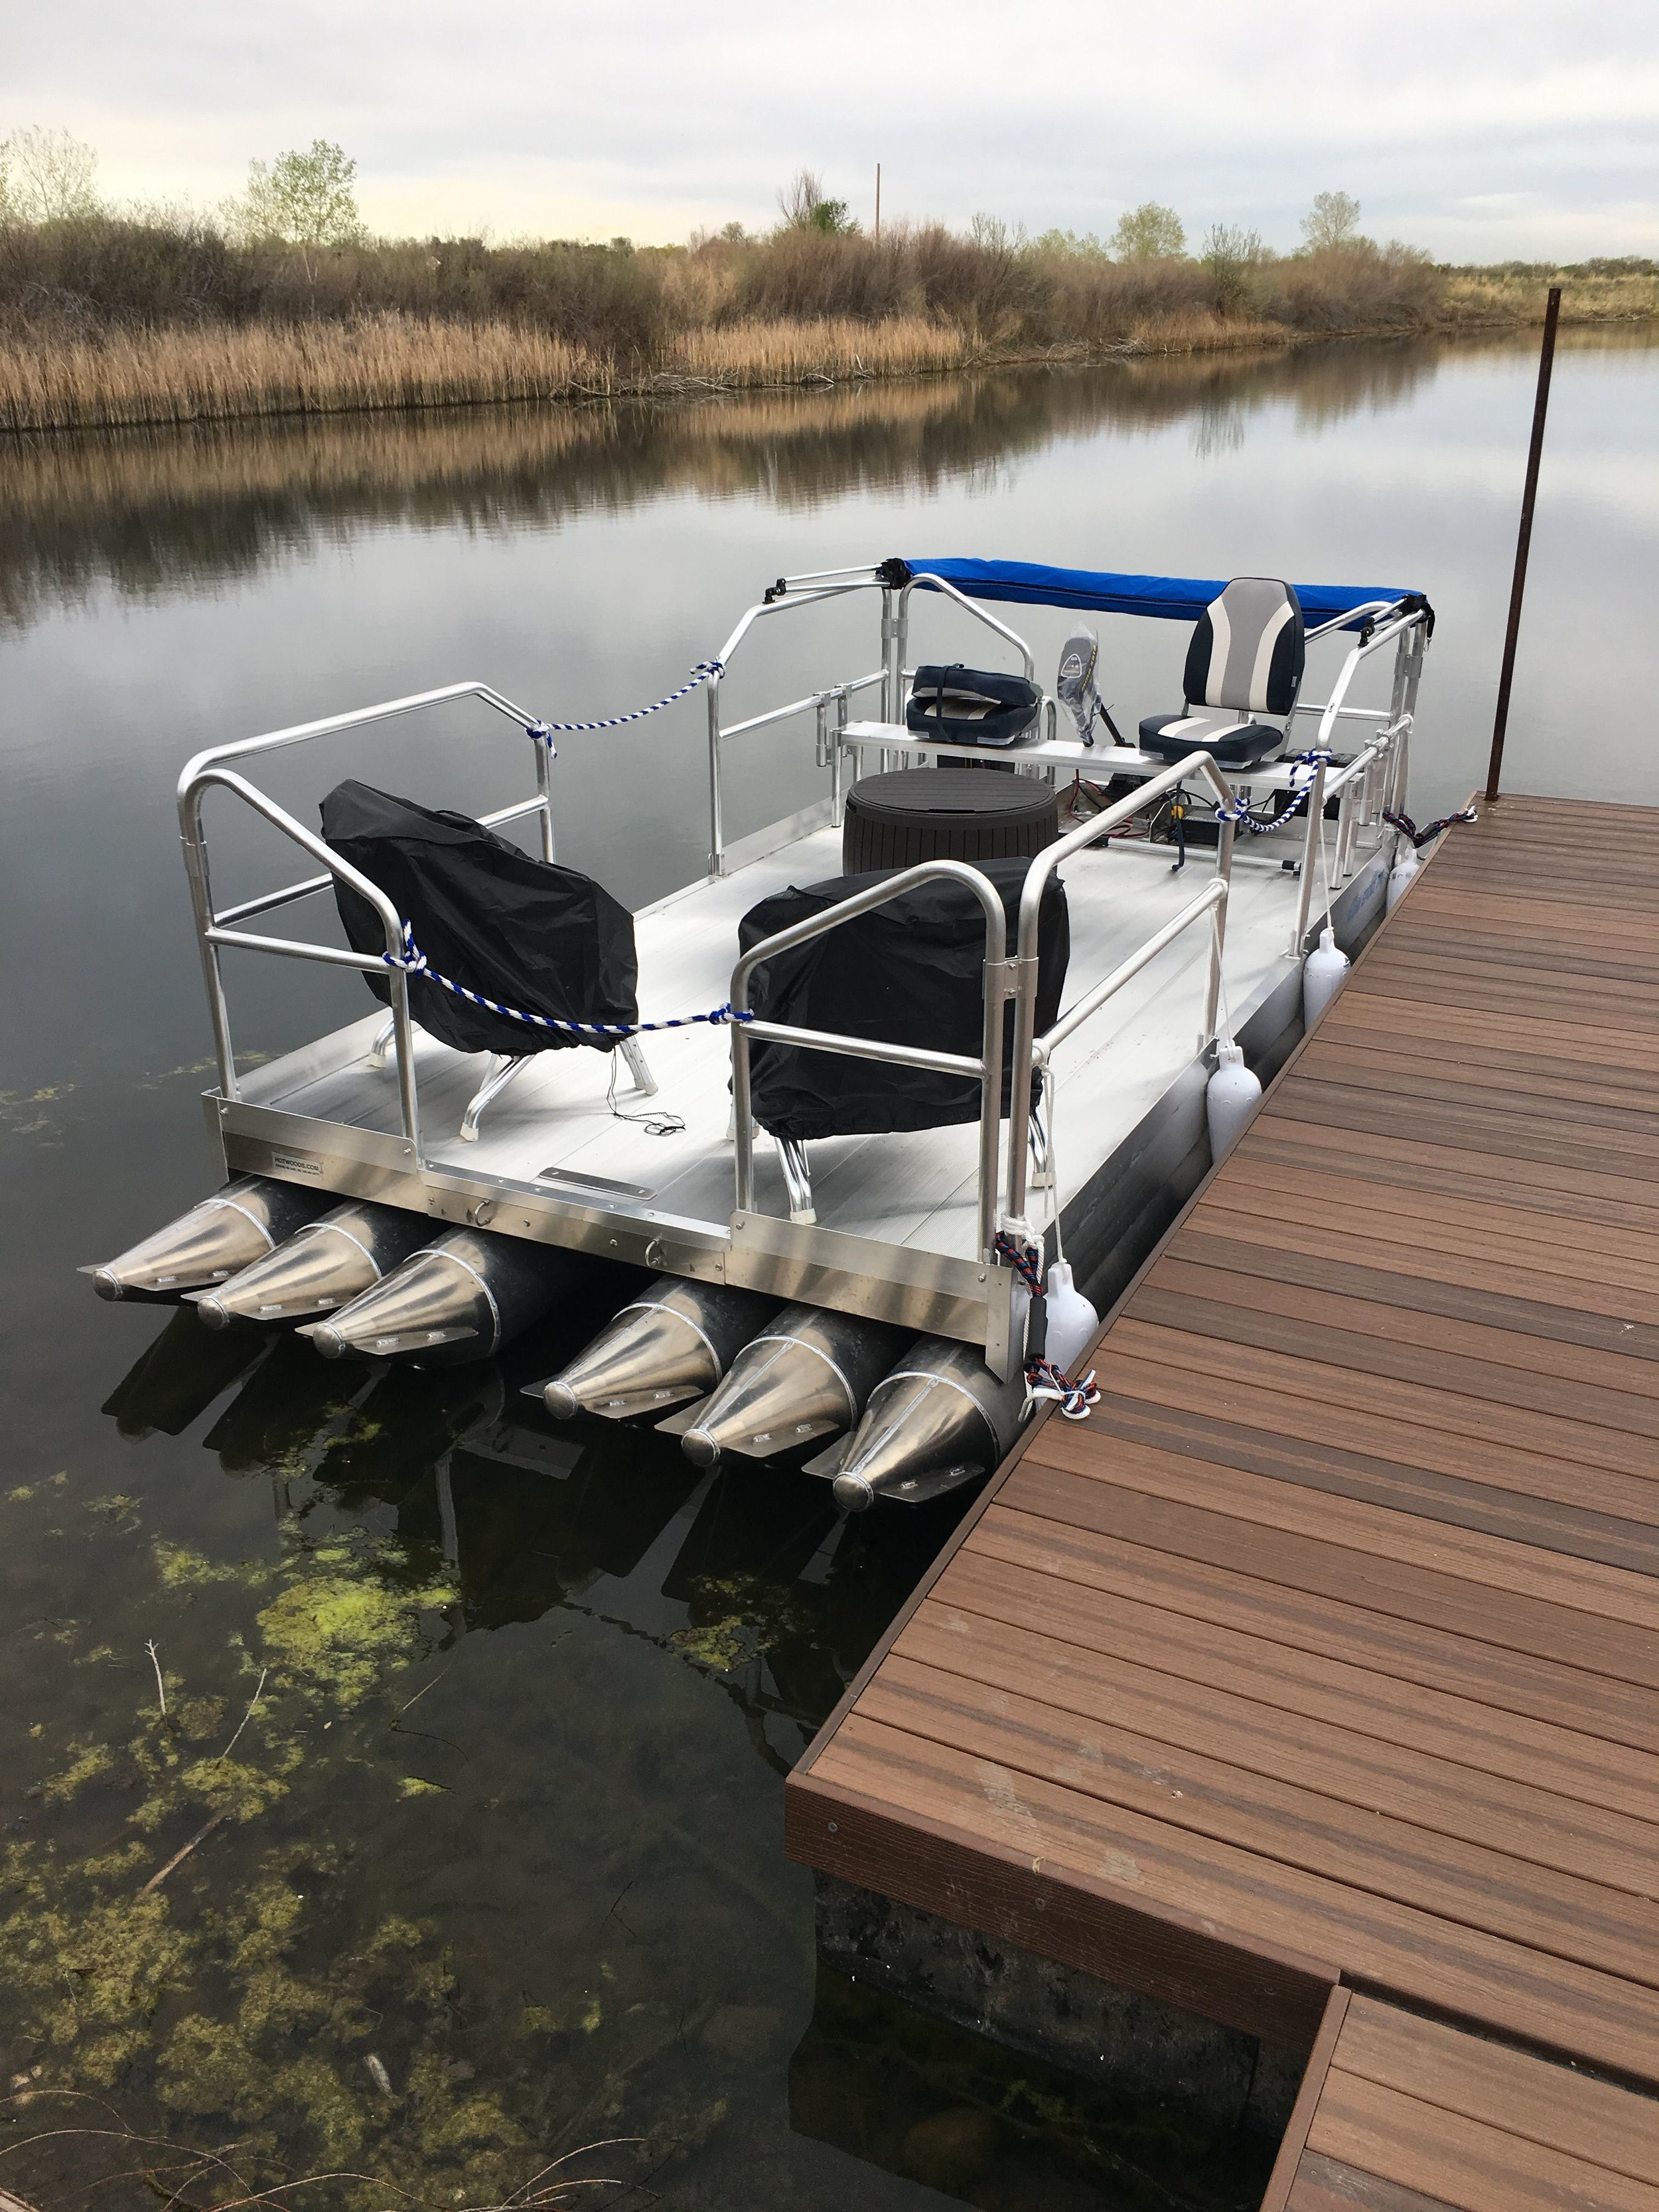 As you see with this customers 716 Aluma Sport, it is possible to have chairs or tables anywhere you want with all the available floor space. This is a great example of what your 716 could look like on the water with a few added accessories.